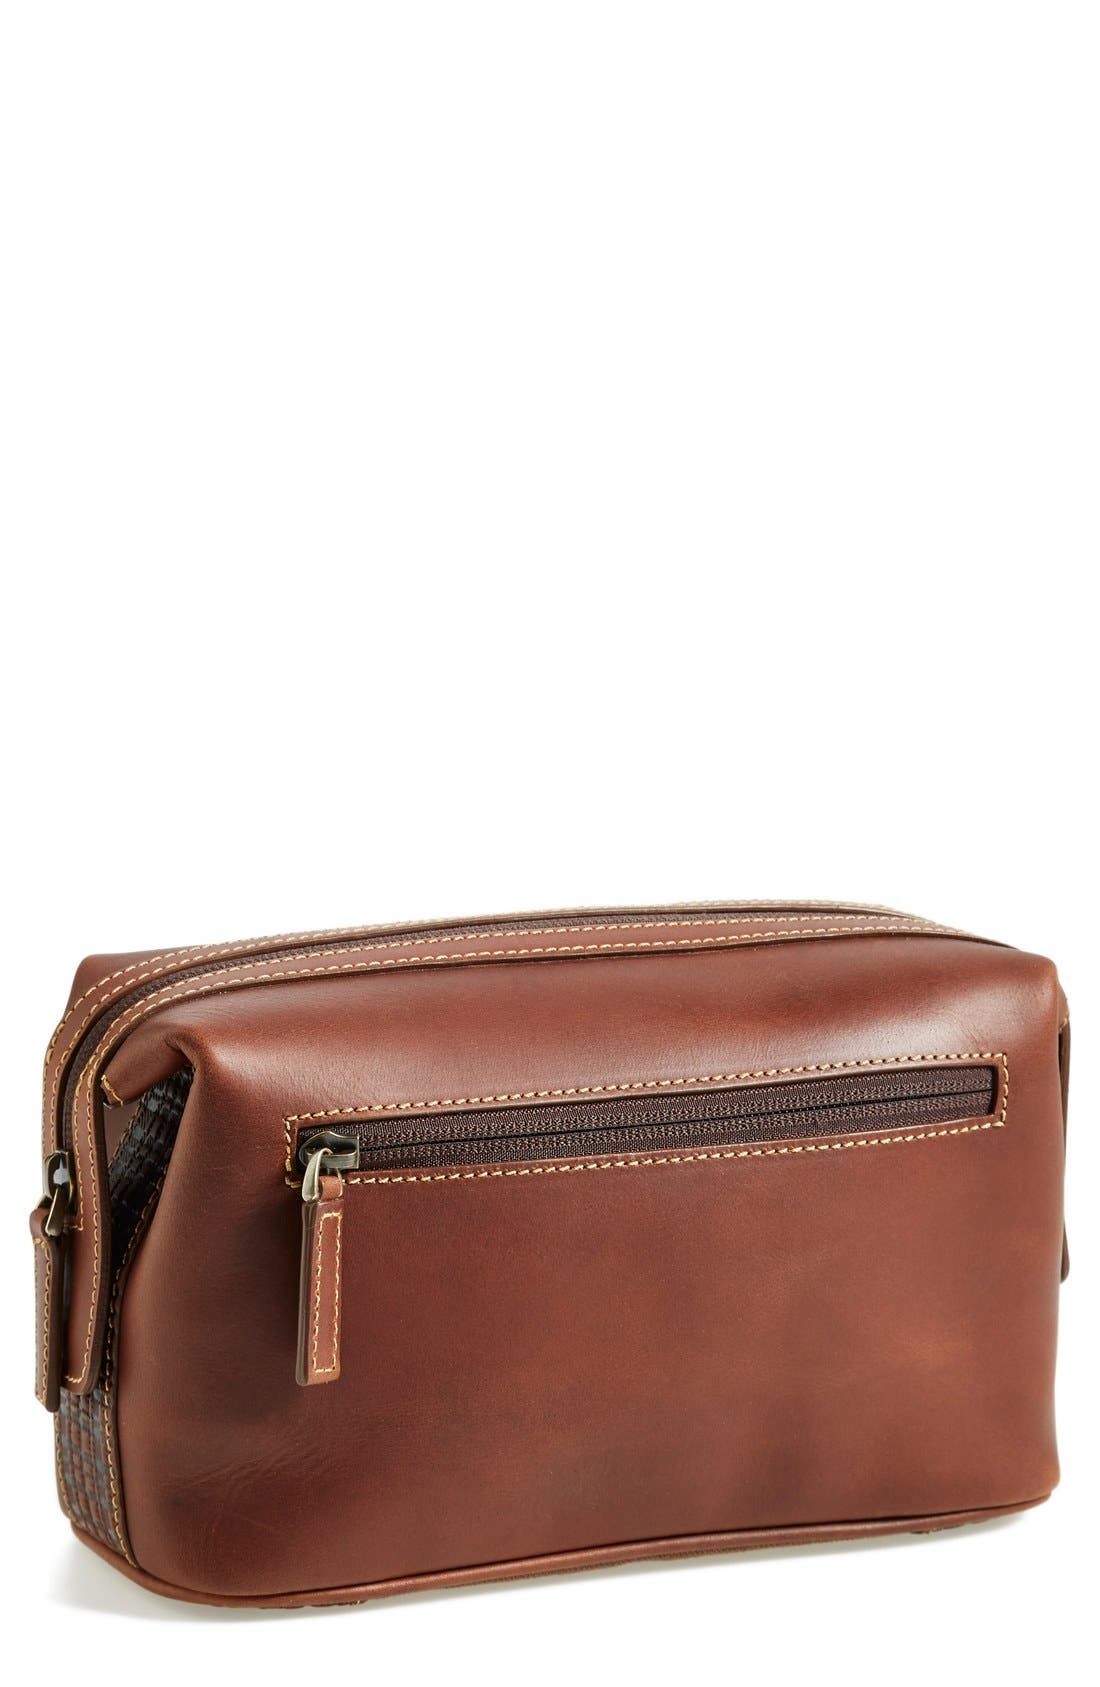 'Bryant' Travel Kit,                         Main,                         color, 241